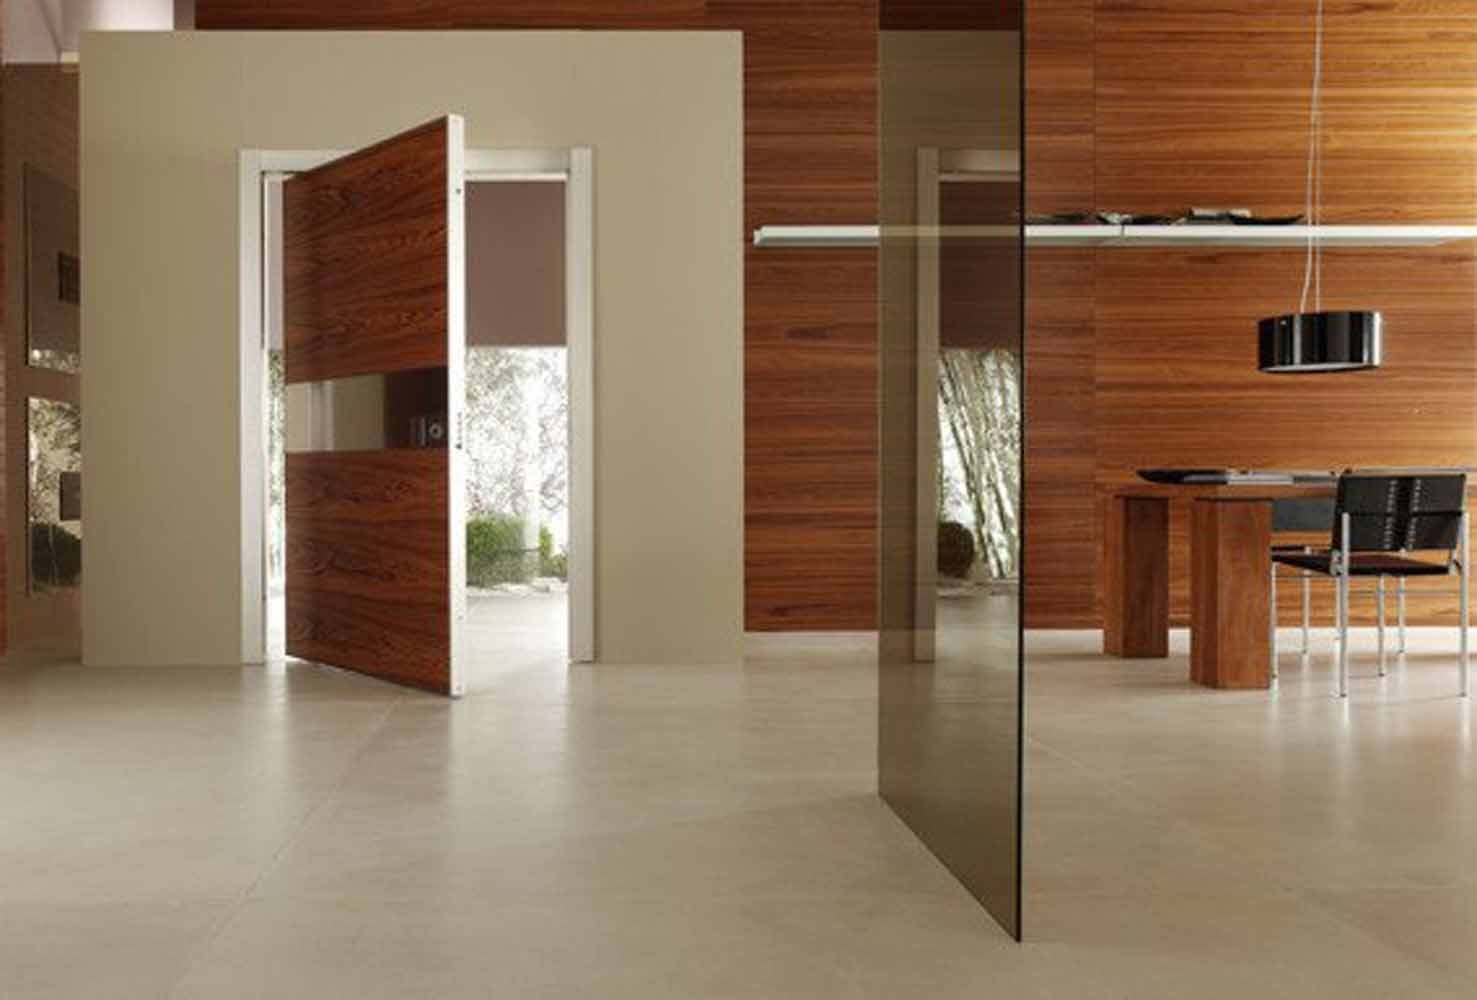 Ordinaire Excellent Modern Entry Doors For Home With Solid Wood Textured Entry Doors  Combined Silver Paneling Featuring White Sash Frame On White Wall Ideas.